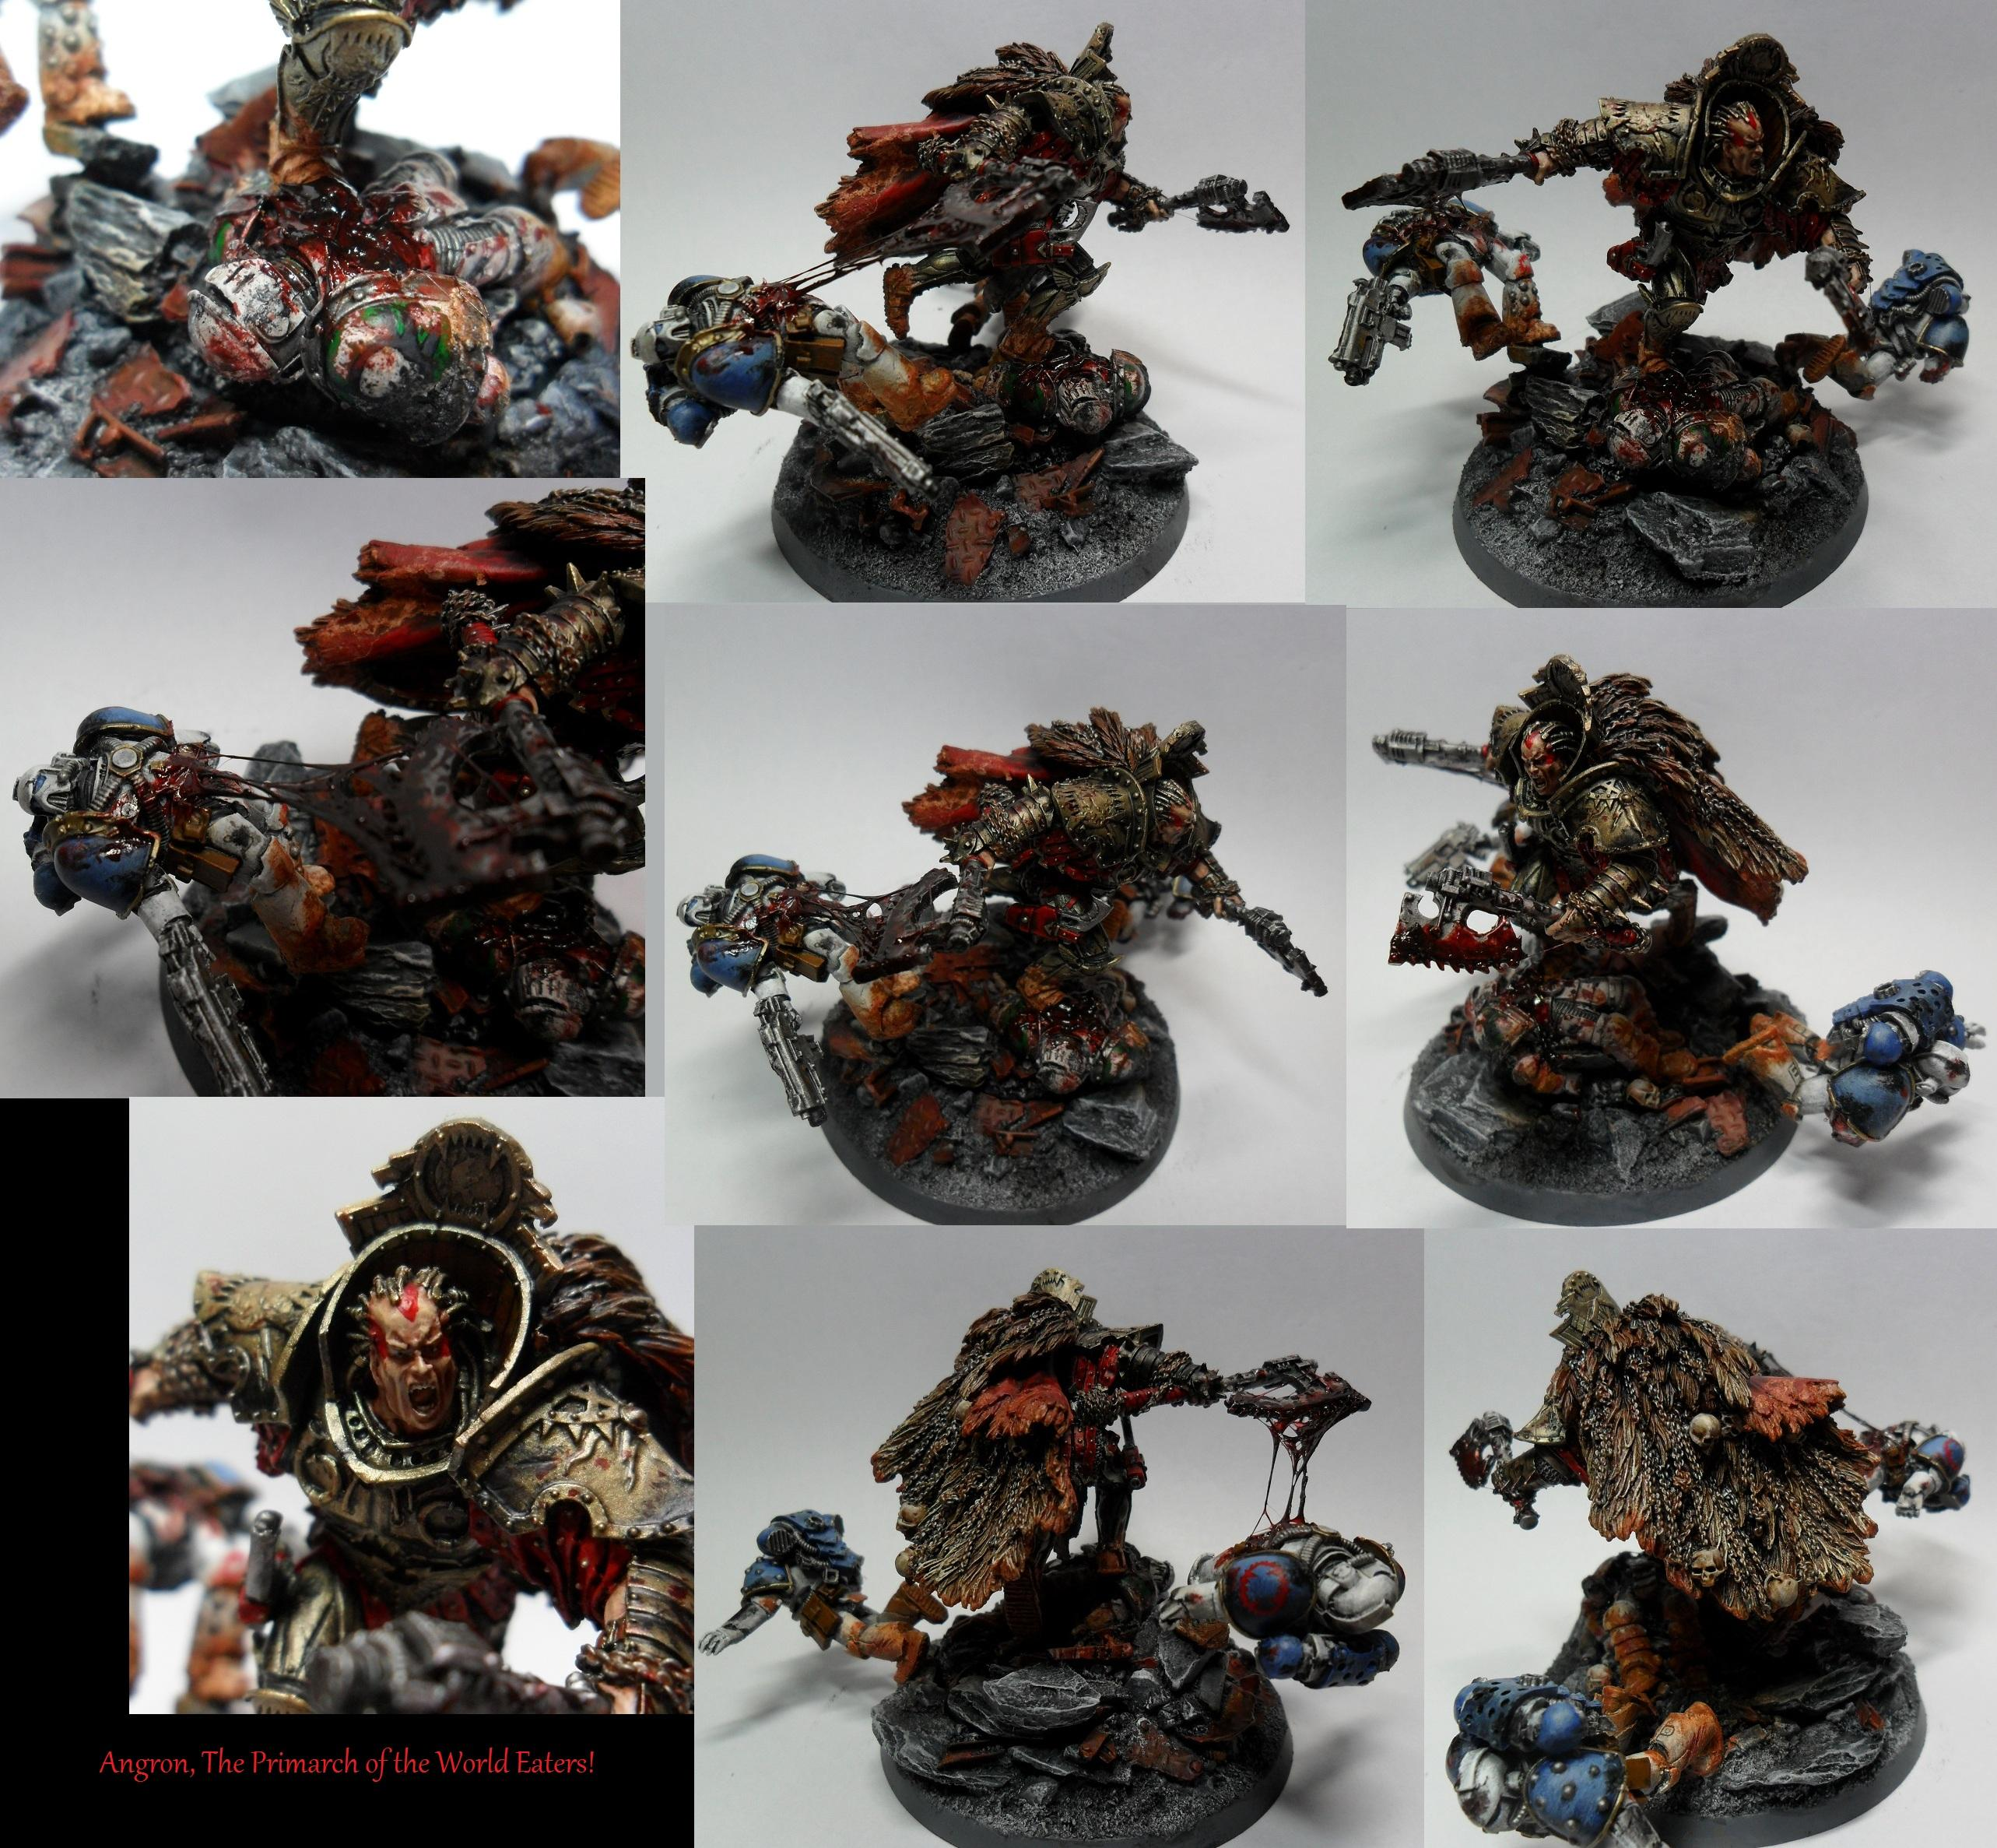 Angron, Blood, Forge World, Primarch, Warhammer 40,000